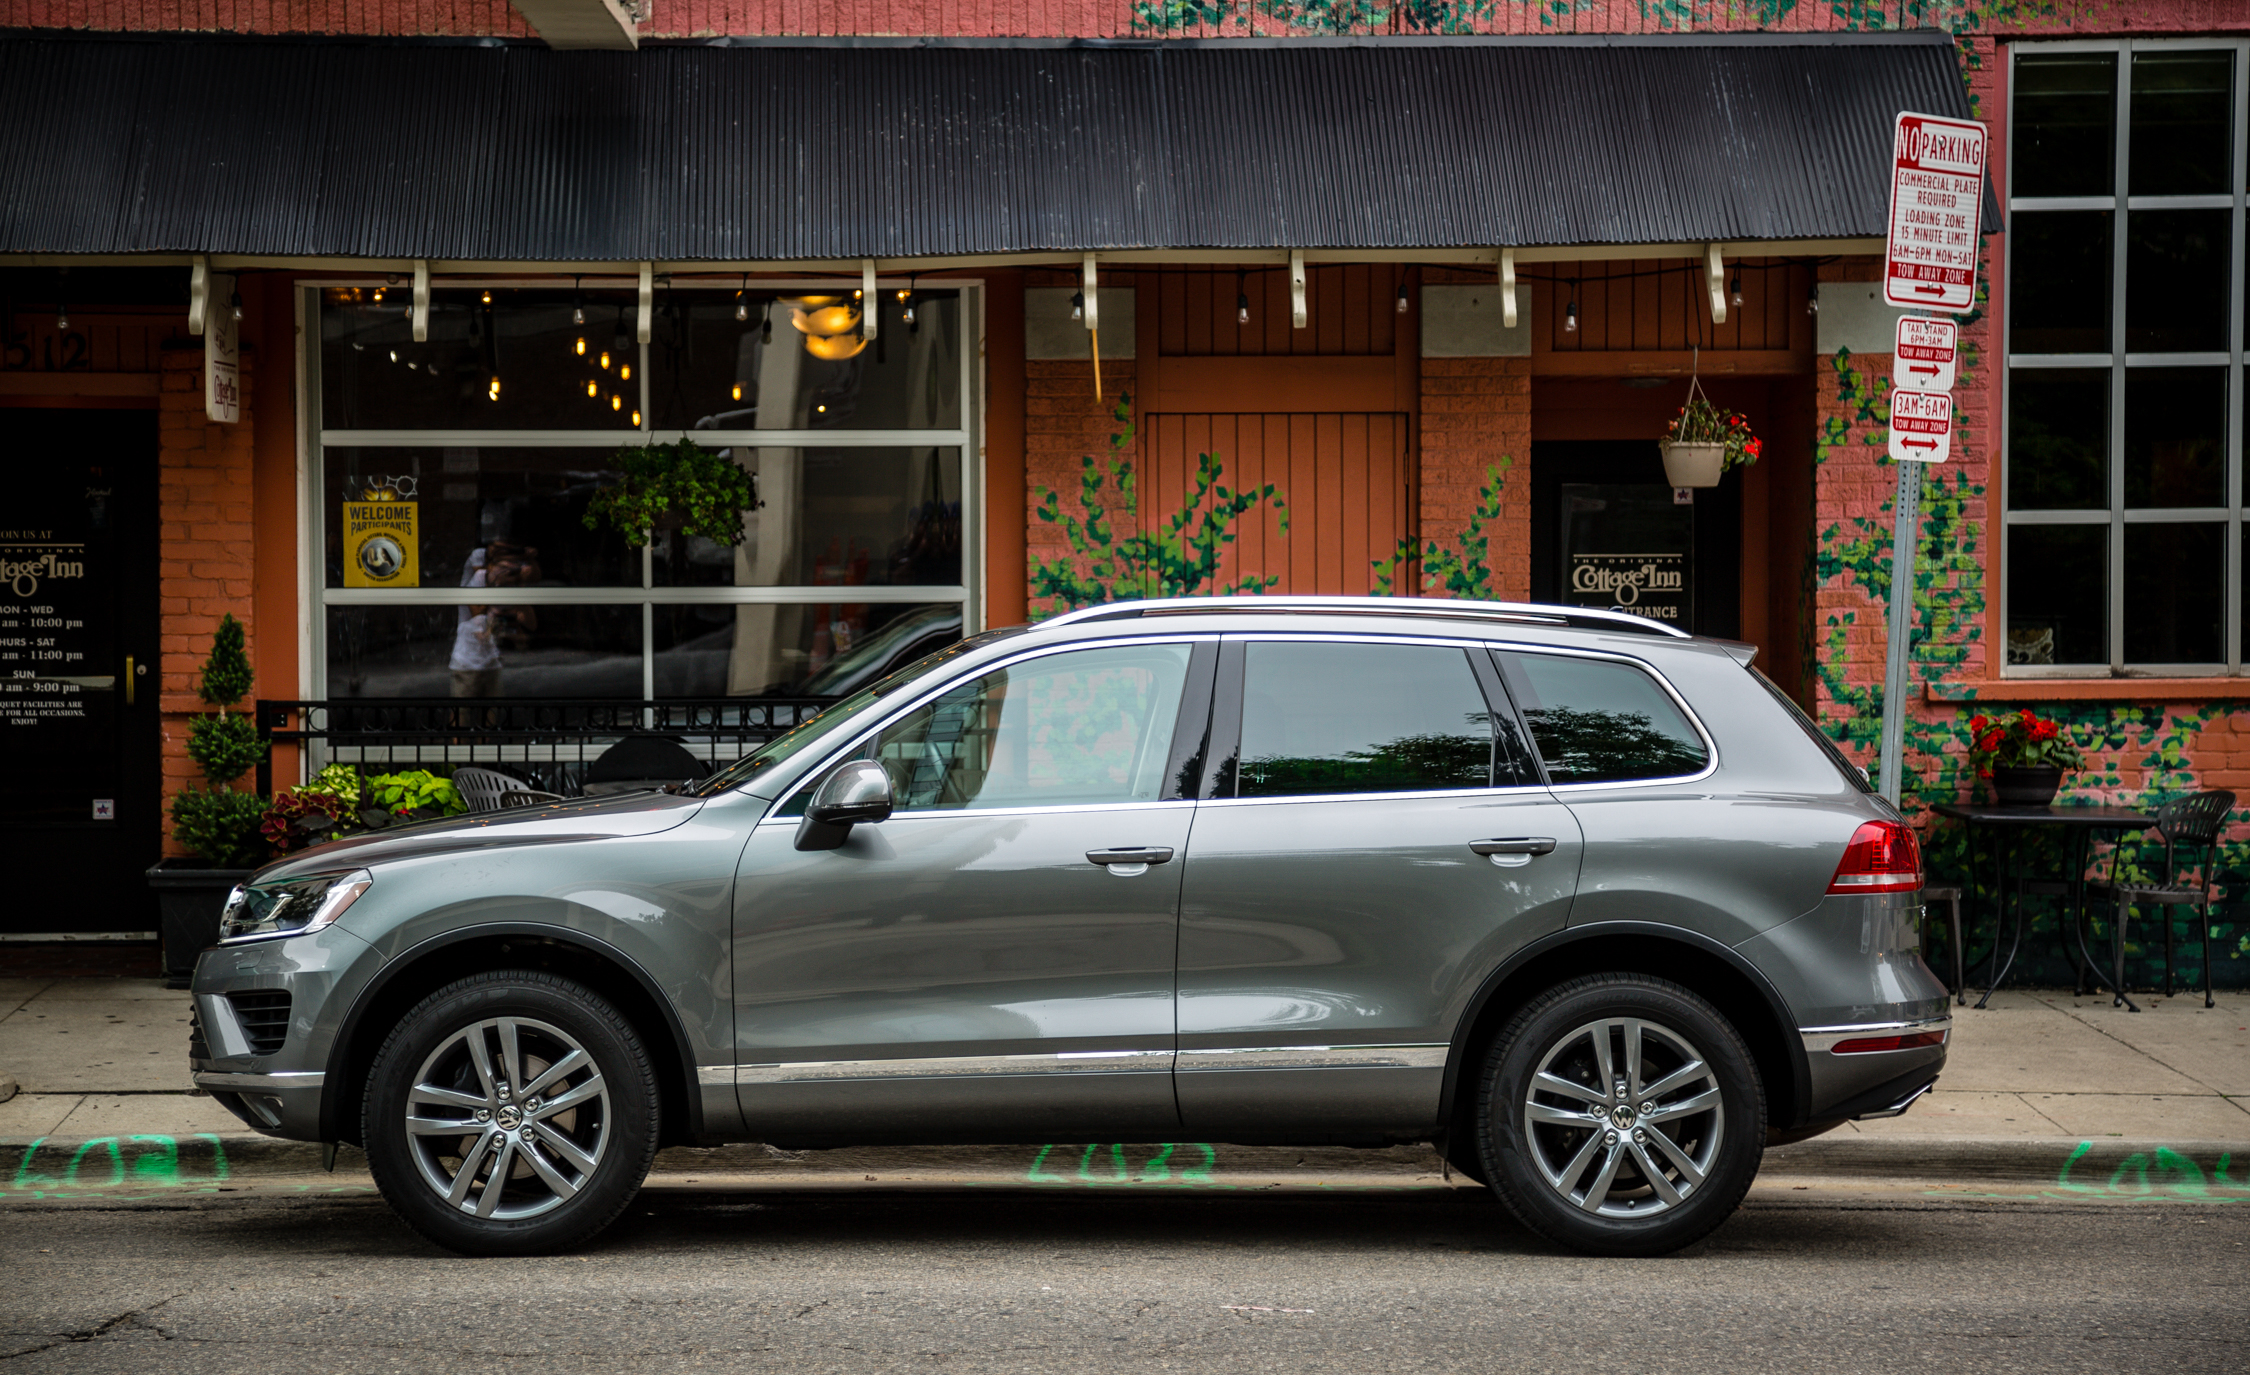 2016 Volkswagen Touareg Exterior Side (View 13 of 16)